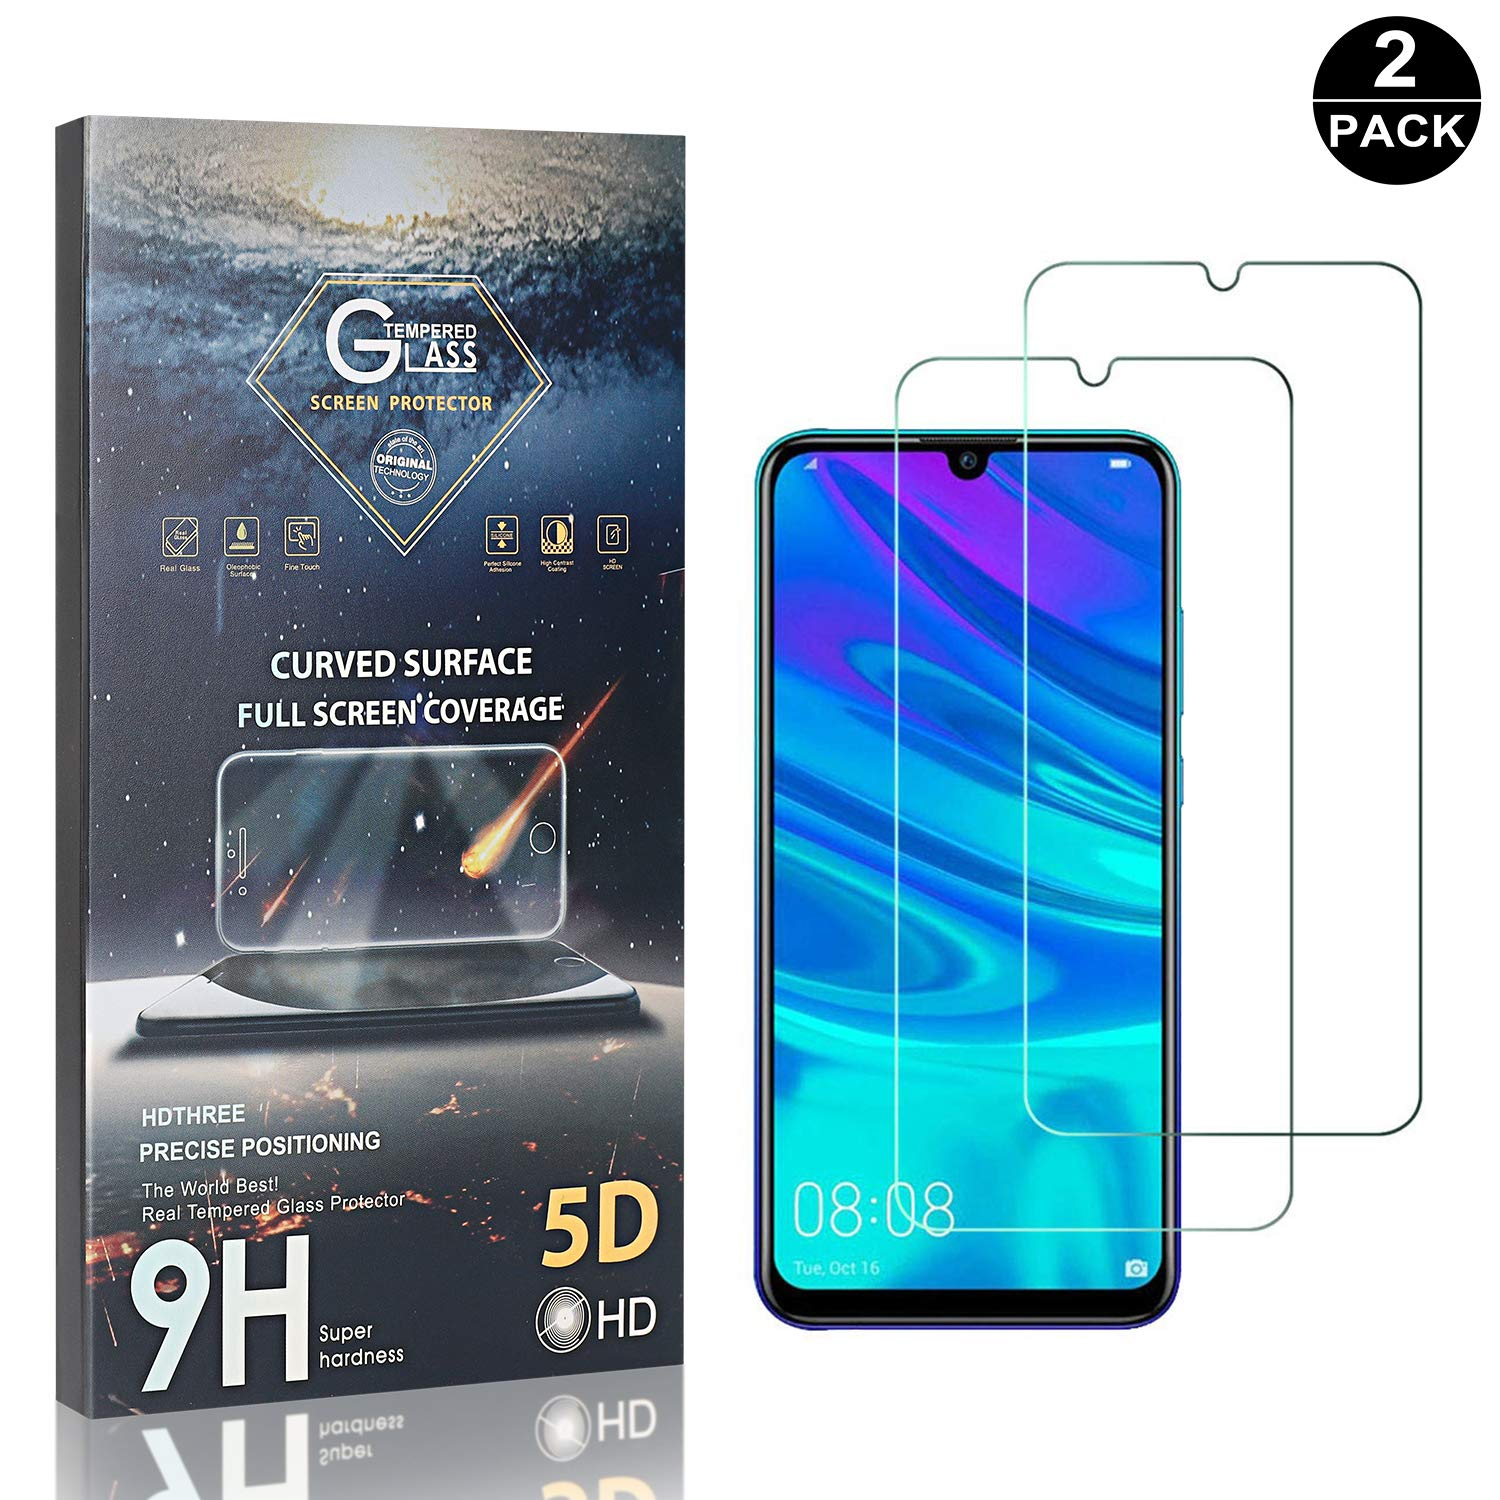 Huawei P Smart Plus 2019 9H Ultra Clear Tempered Glass for Huawei Honor 10I Huawei P Smart Plus 2019 UNEXTATI 2 Pack Screen Protector Compatible with Huawei Honor 10I